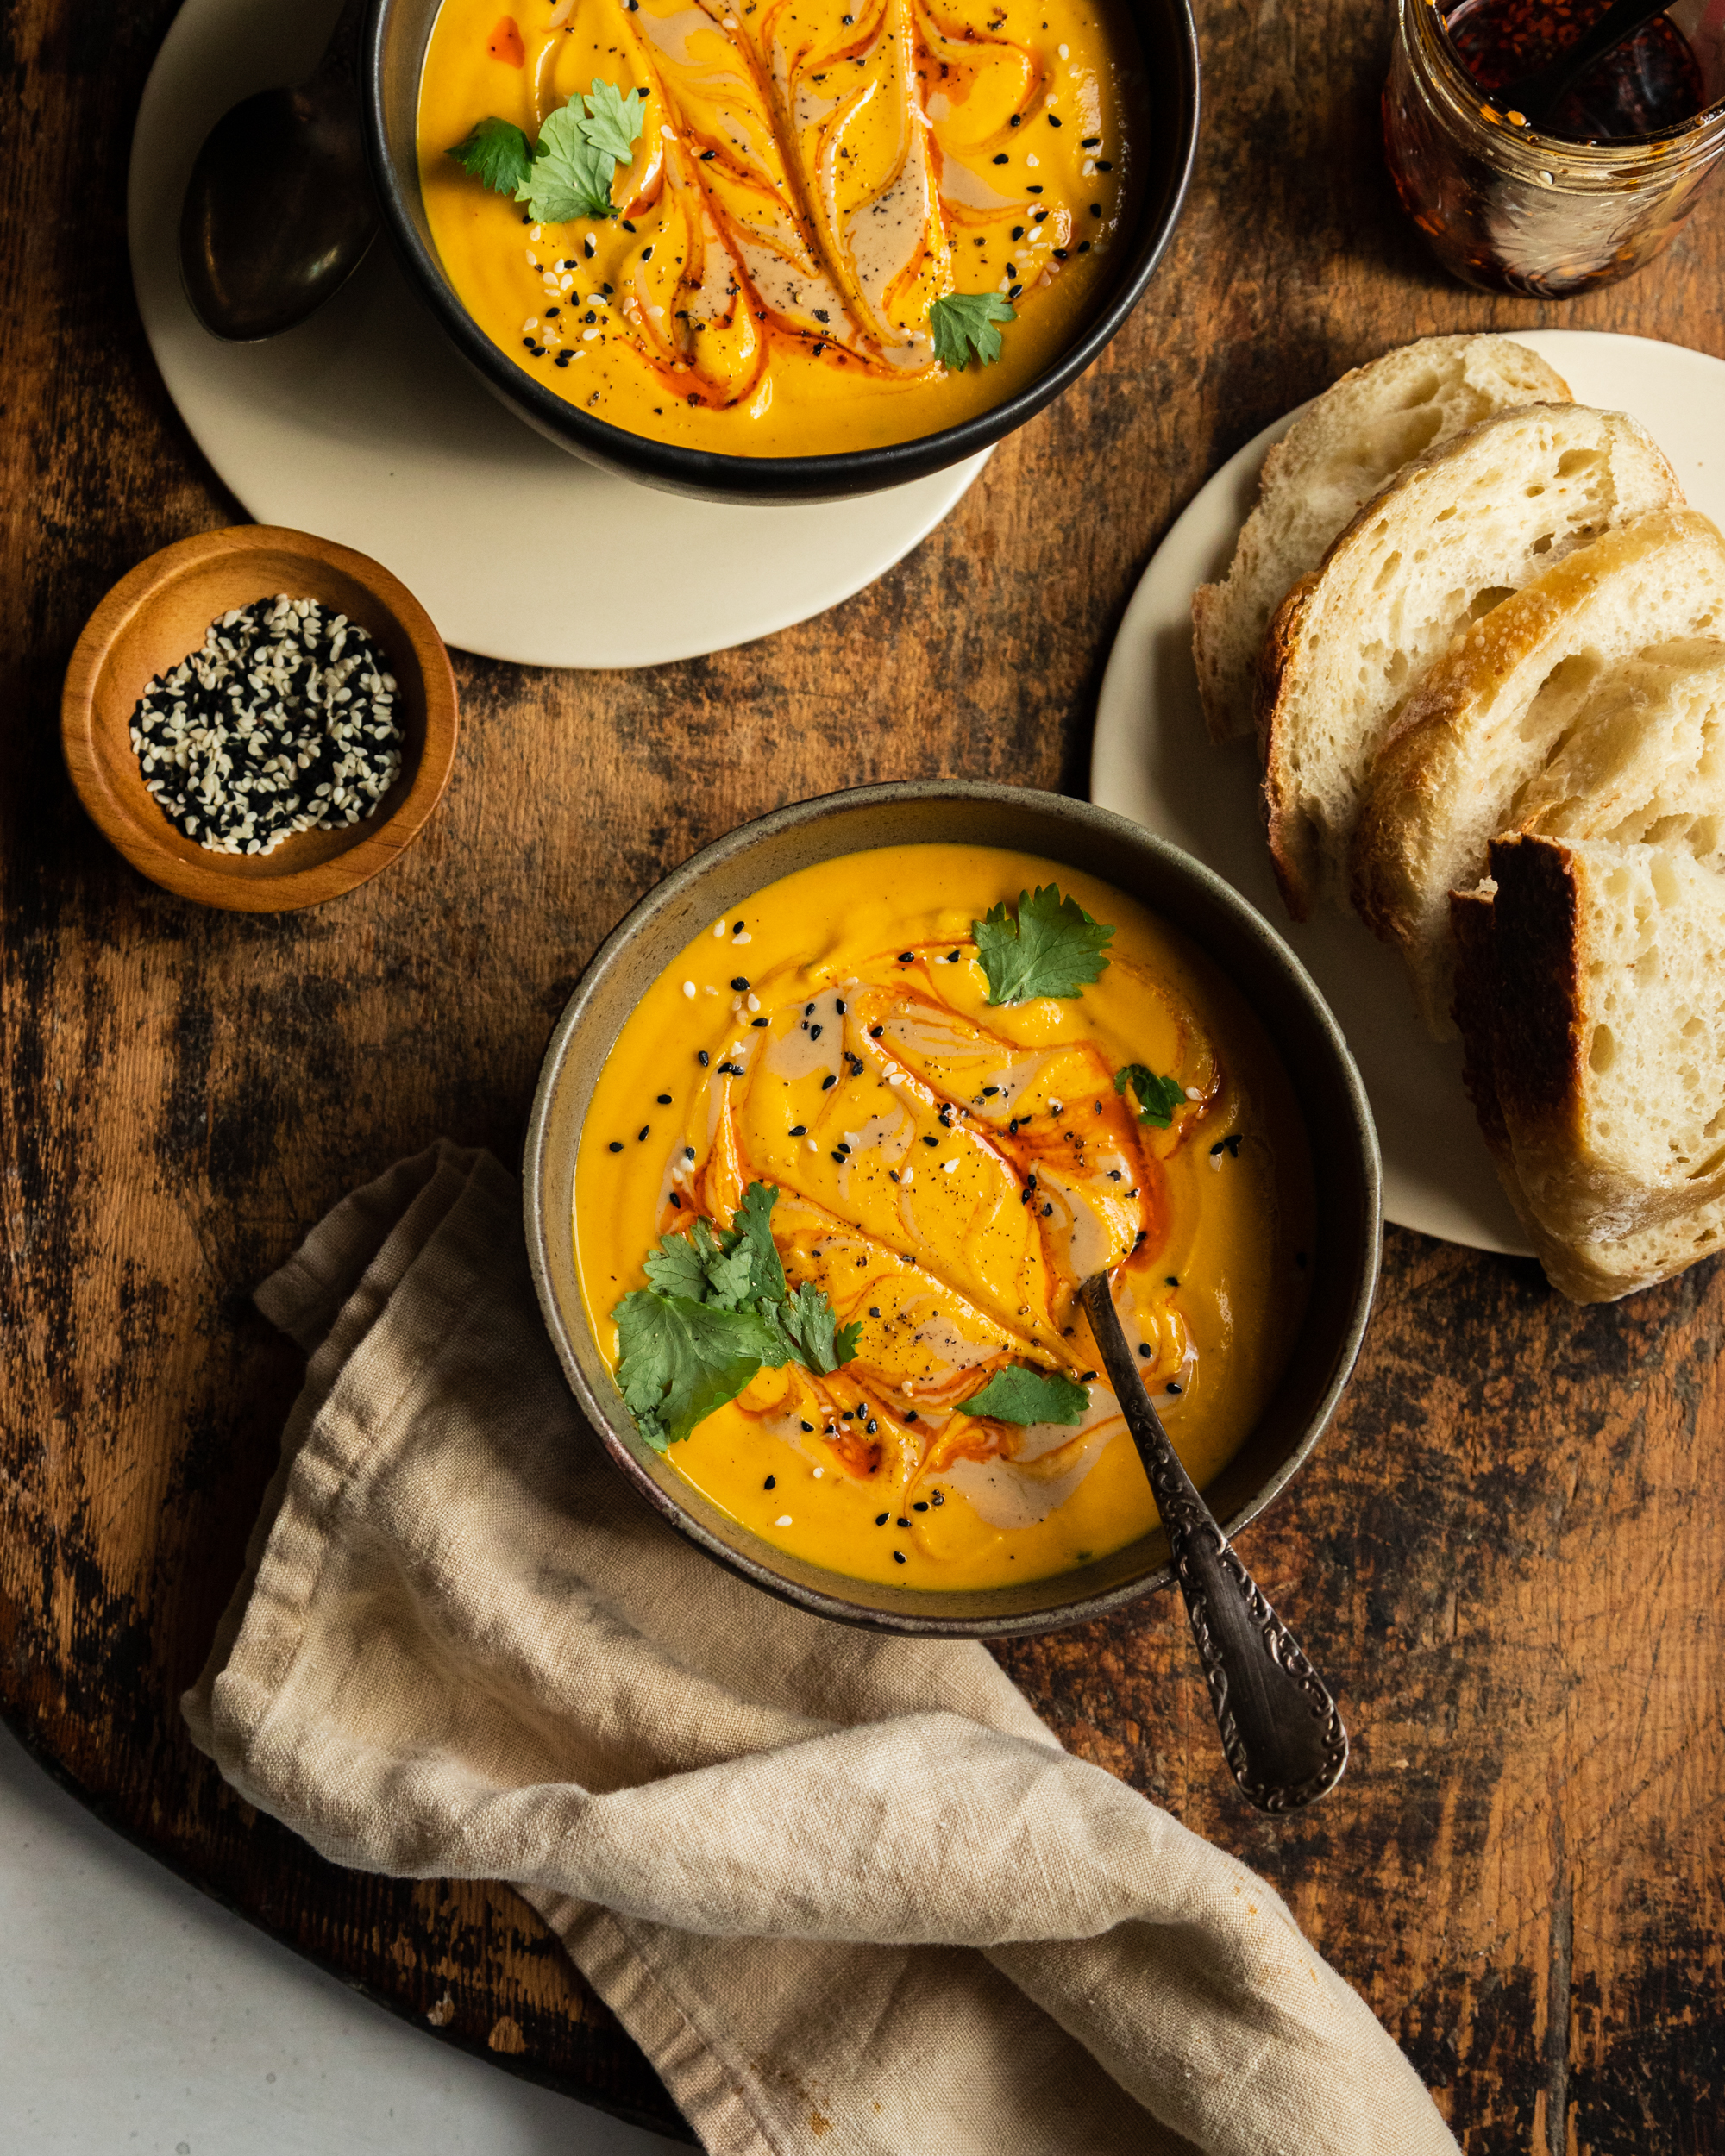 An overhead shot of a bowl of vibrant and creamy orange soup that is swirled with a red slick of oil on top. The soup has a crust of bread in it and is also garnished with sesame seeds and cilantro.